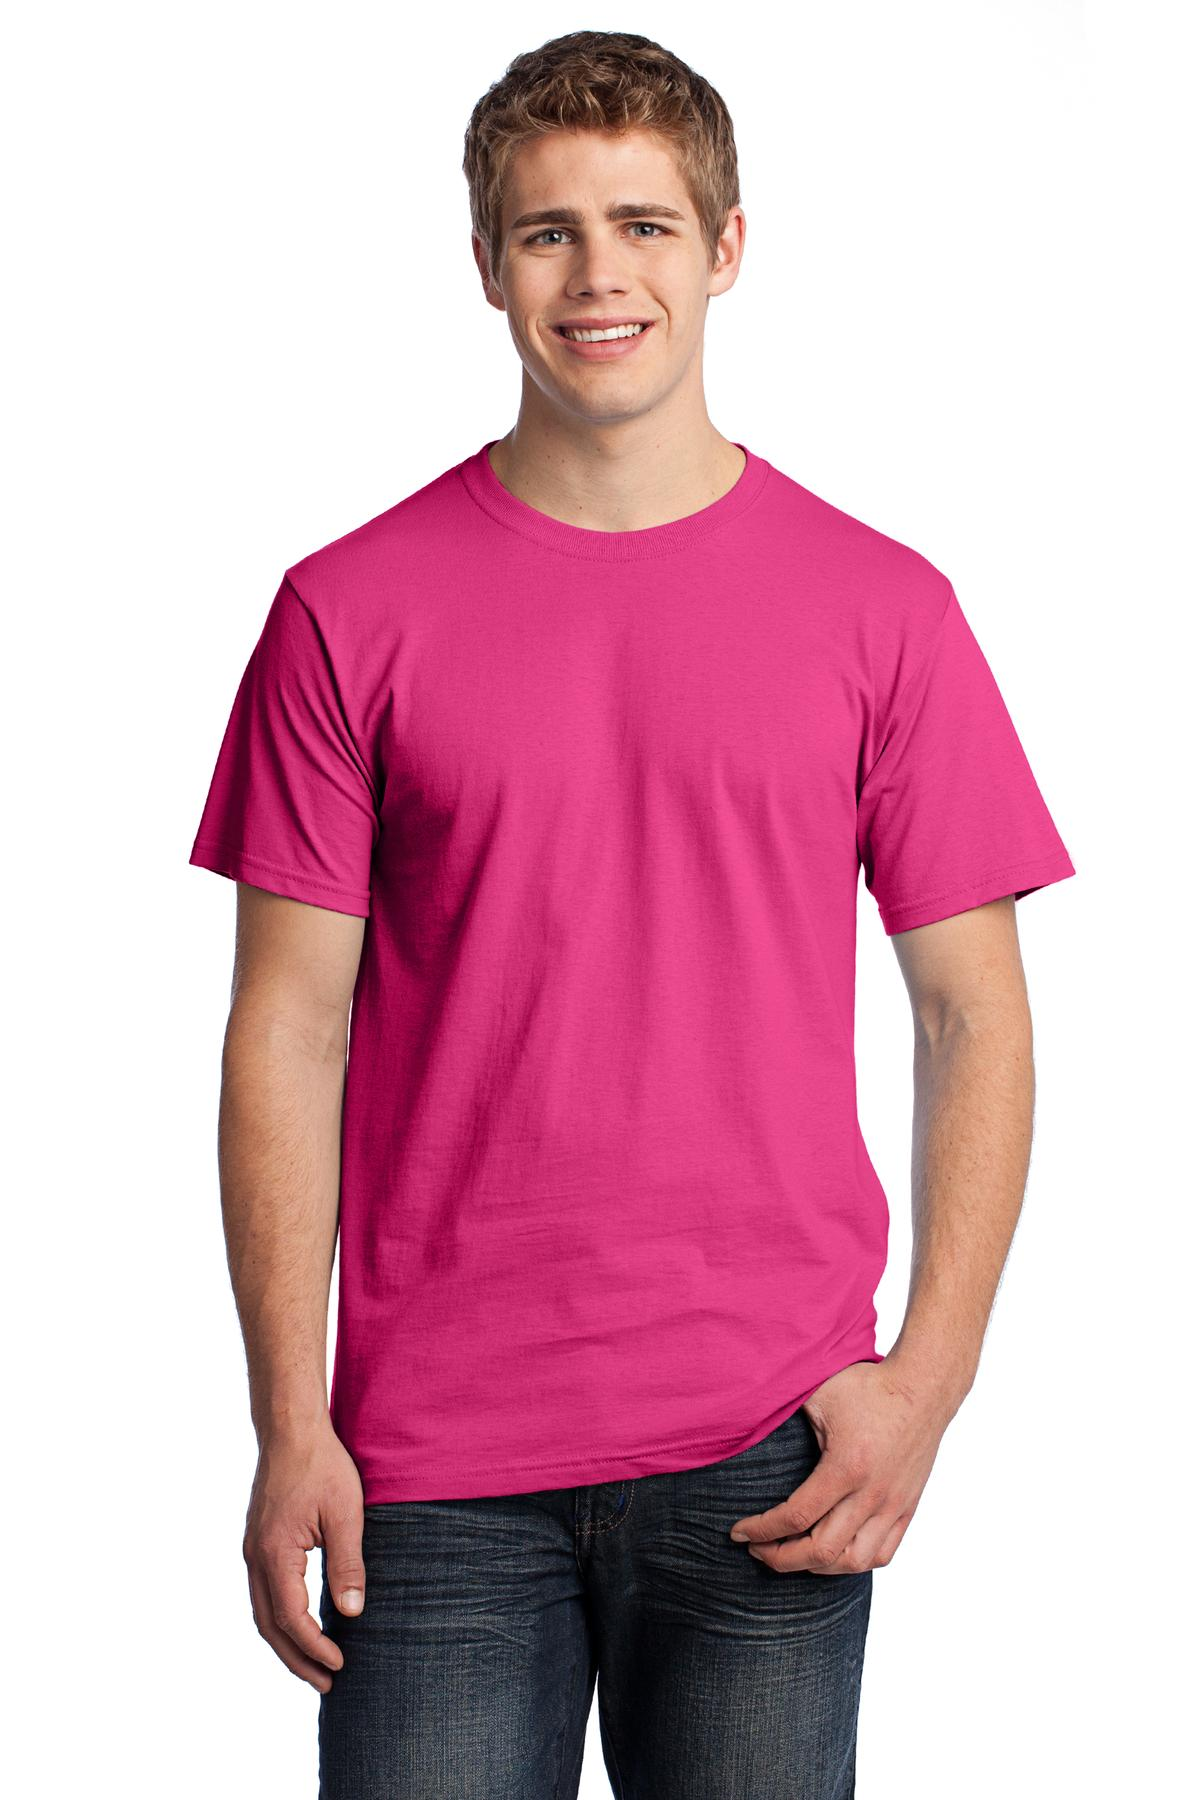 Fruit of the Loom ®  HD Cotton ™  100% Cotton T-Shirt. 3930 - Cyber Pink